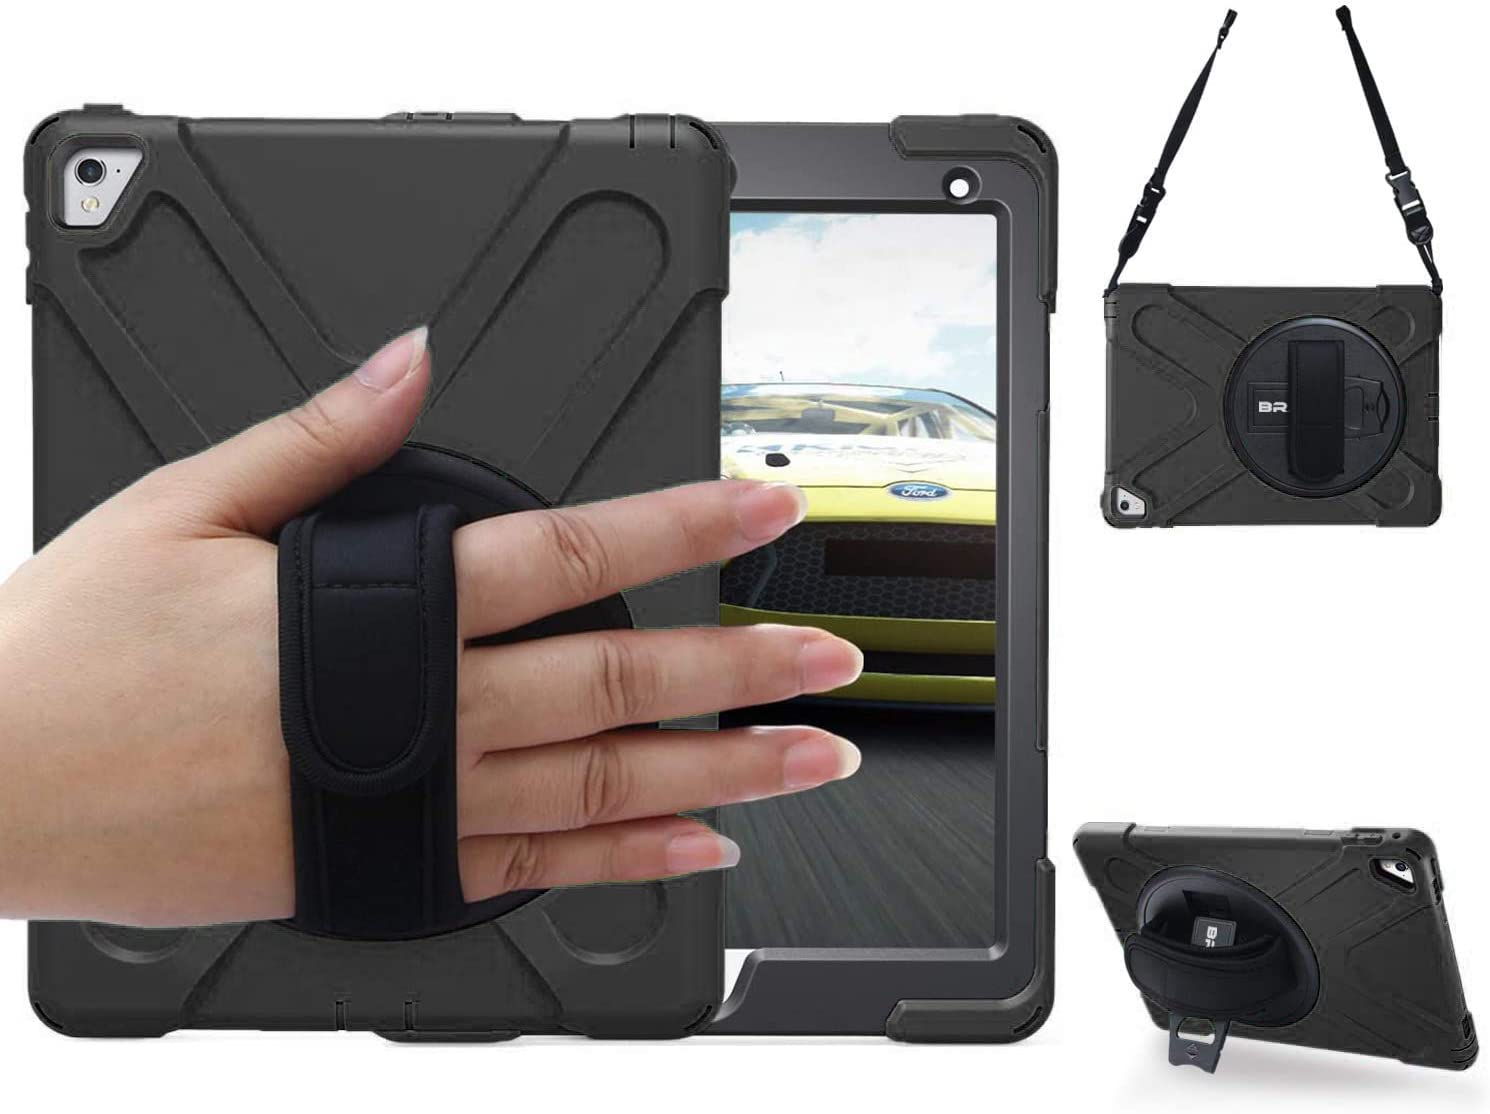 BRAECN iPad Pro 9.7 Case,iPad 9.7 Case 2016 [Shockproof] Full-Body Heavy Duty Protective Case with 360 Swivel Kickstand/Hand Strap/Shoulder Strap for iPad 9.7 Pro case a1673 a1674 a1675-Black